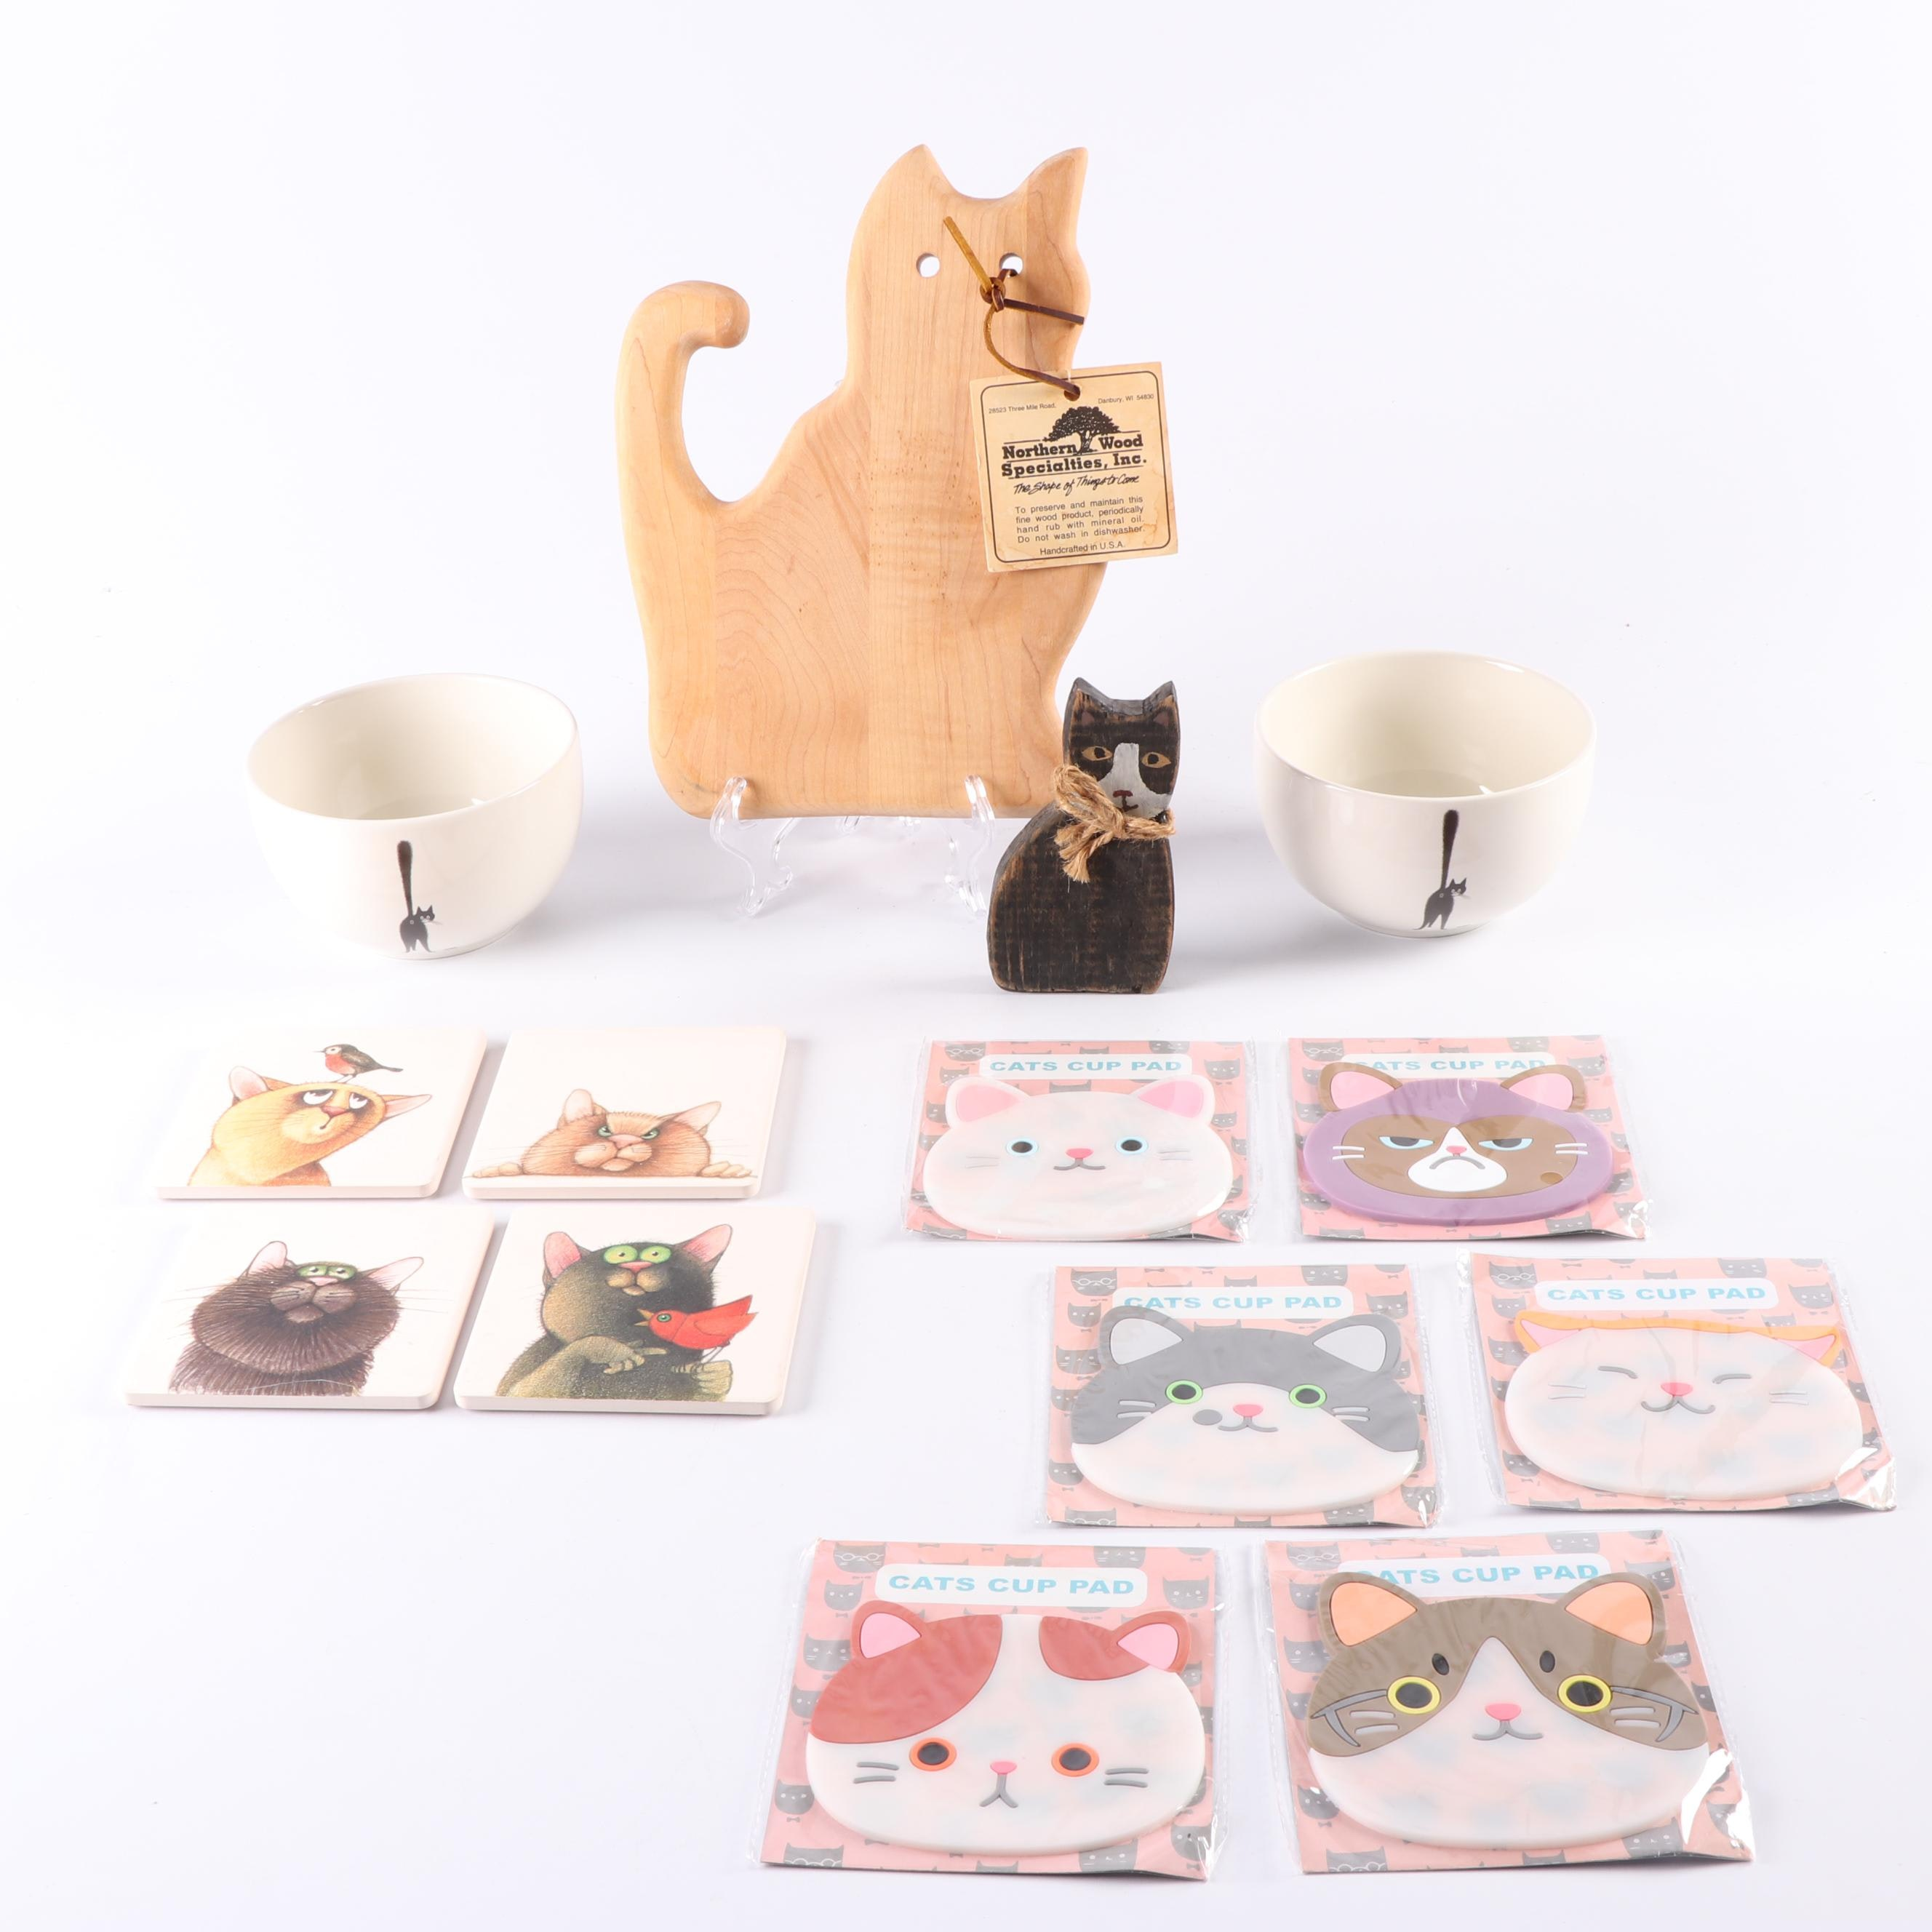 Cat Themed Coasters and Serveware featuring Dubout